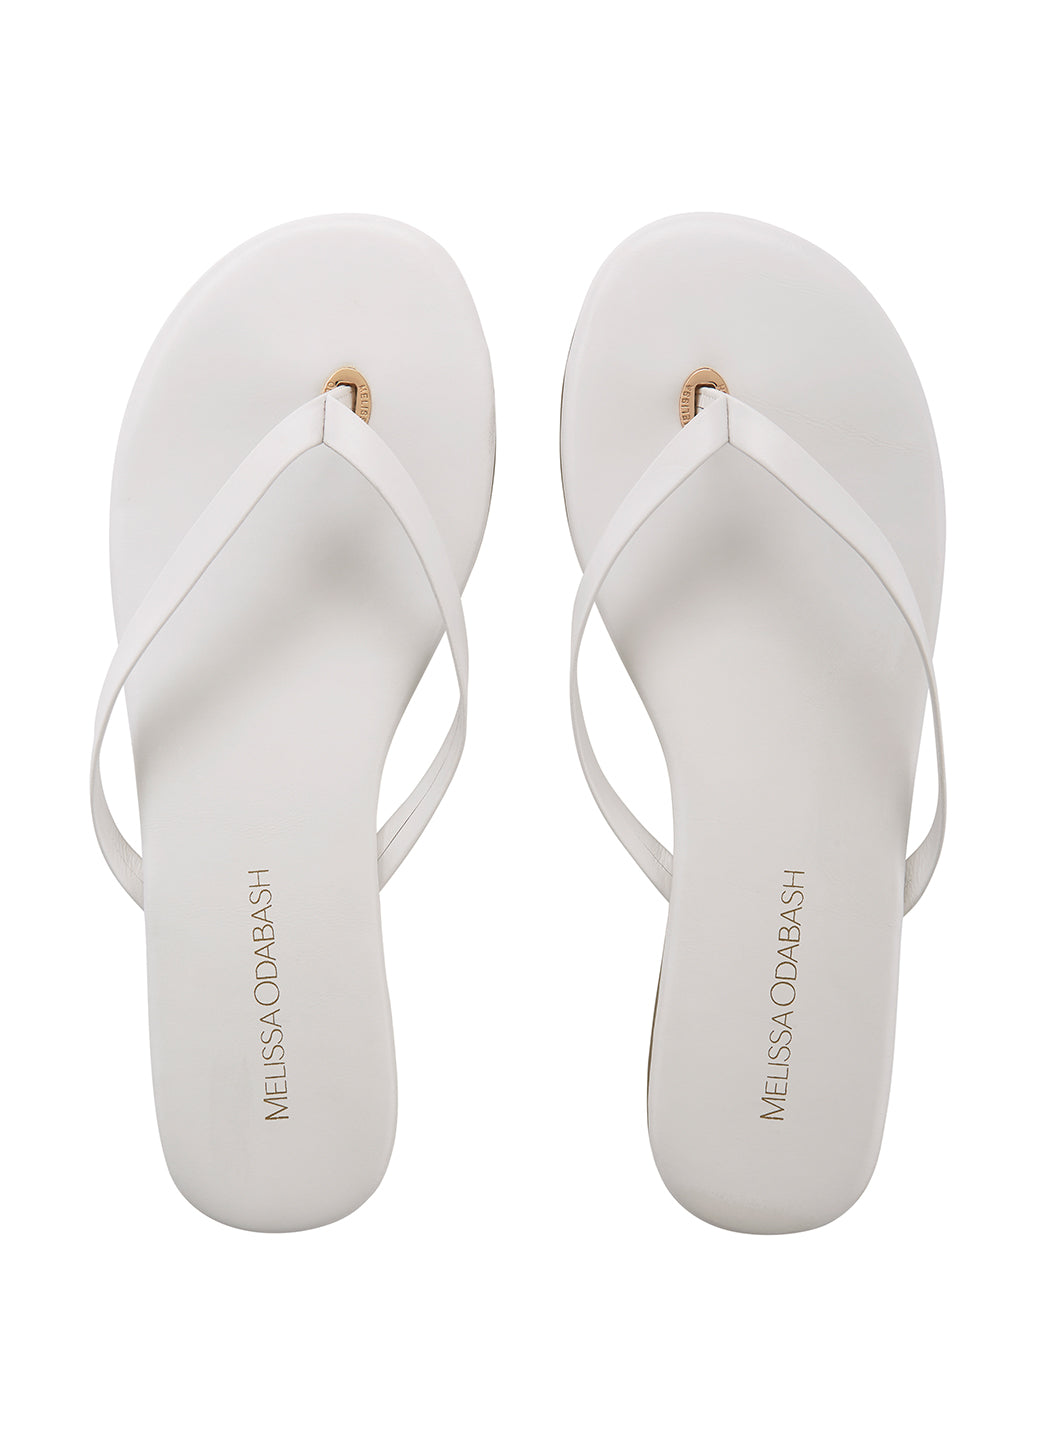 Leather Flip Flops White - Melissa Odabash Accessories